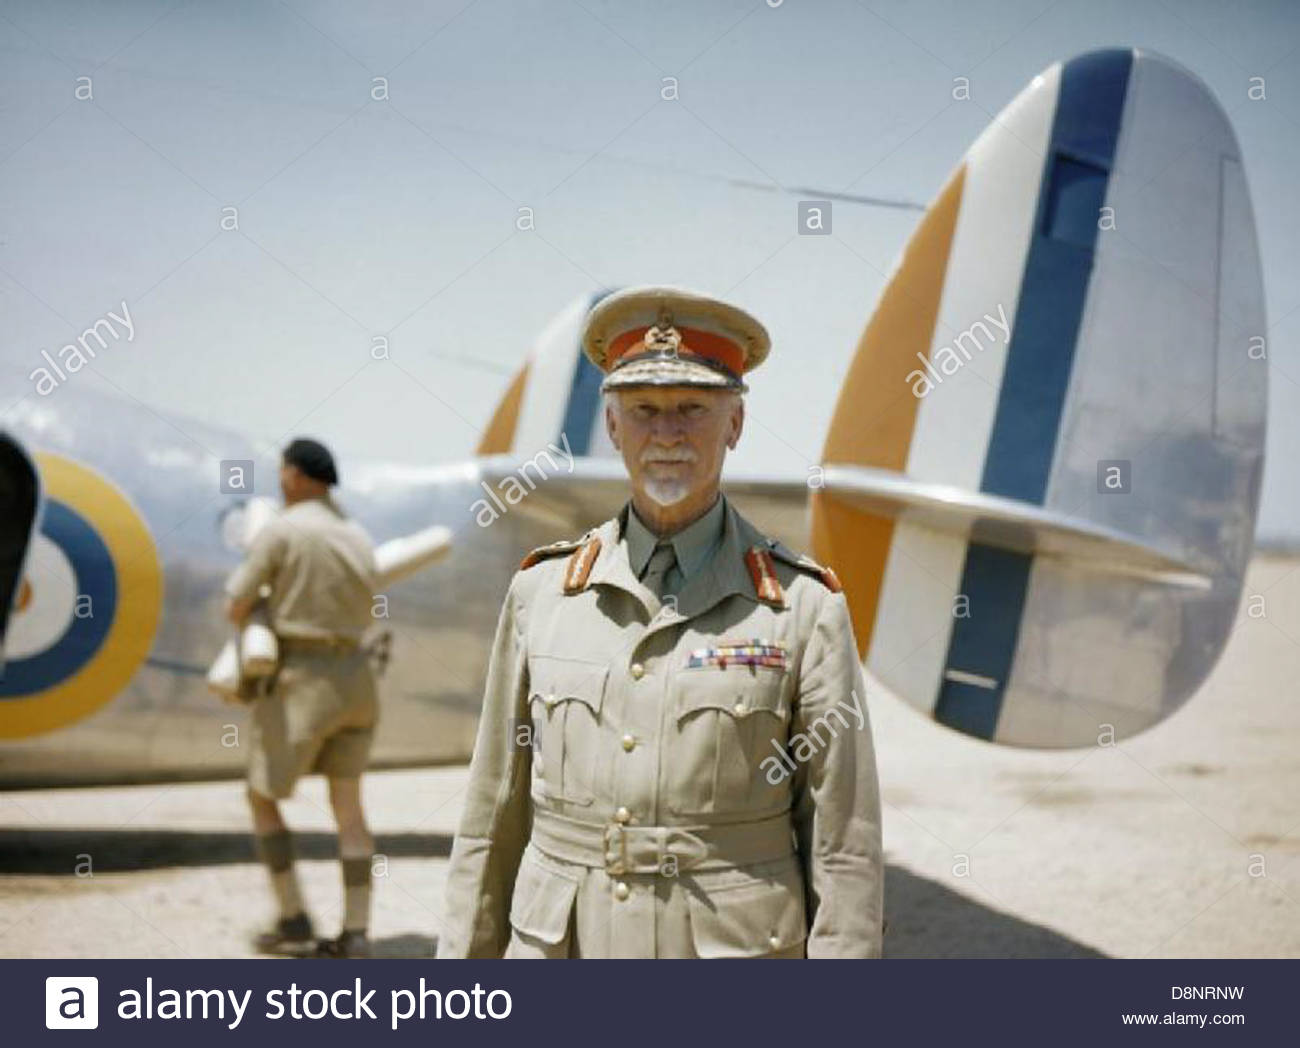 Field Marshal Jan Smuts, Prime Minister of the Union of South Africa, standing in front of a Lockheed Lodestar aircraft - Stock Image